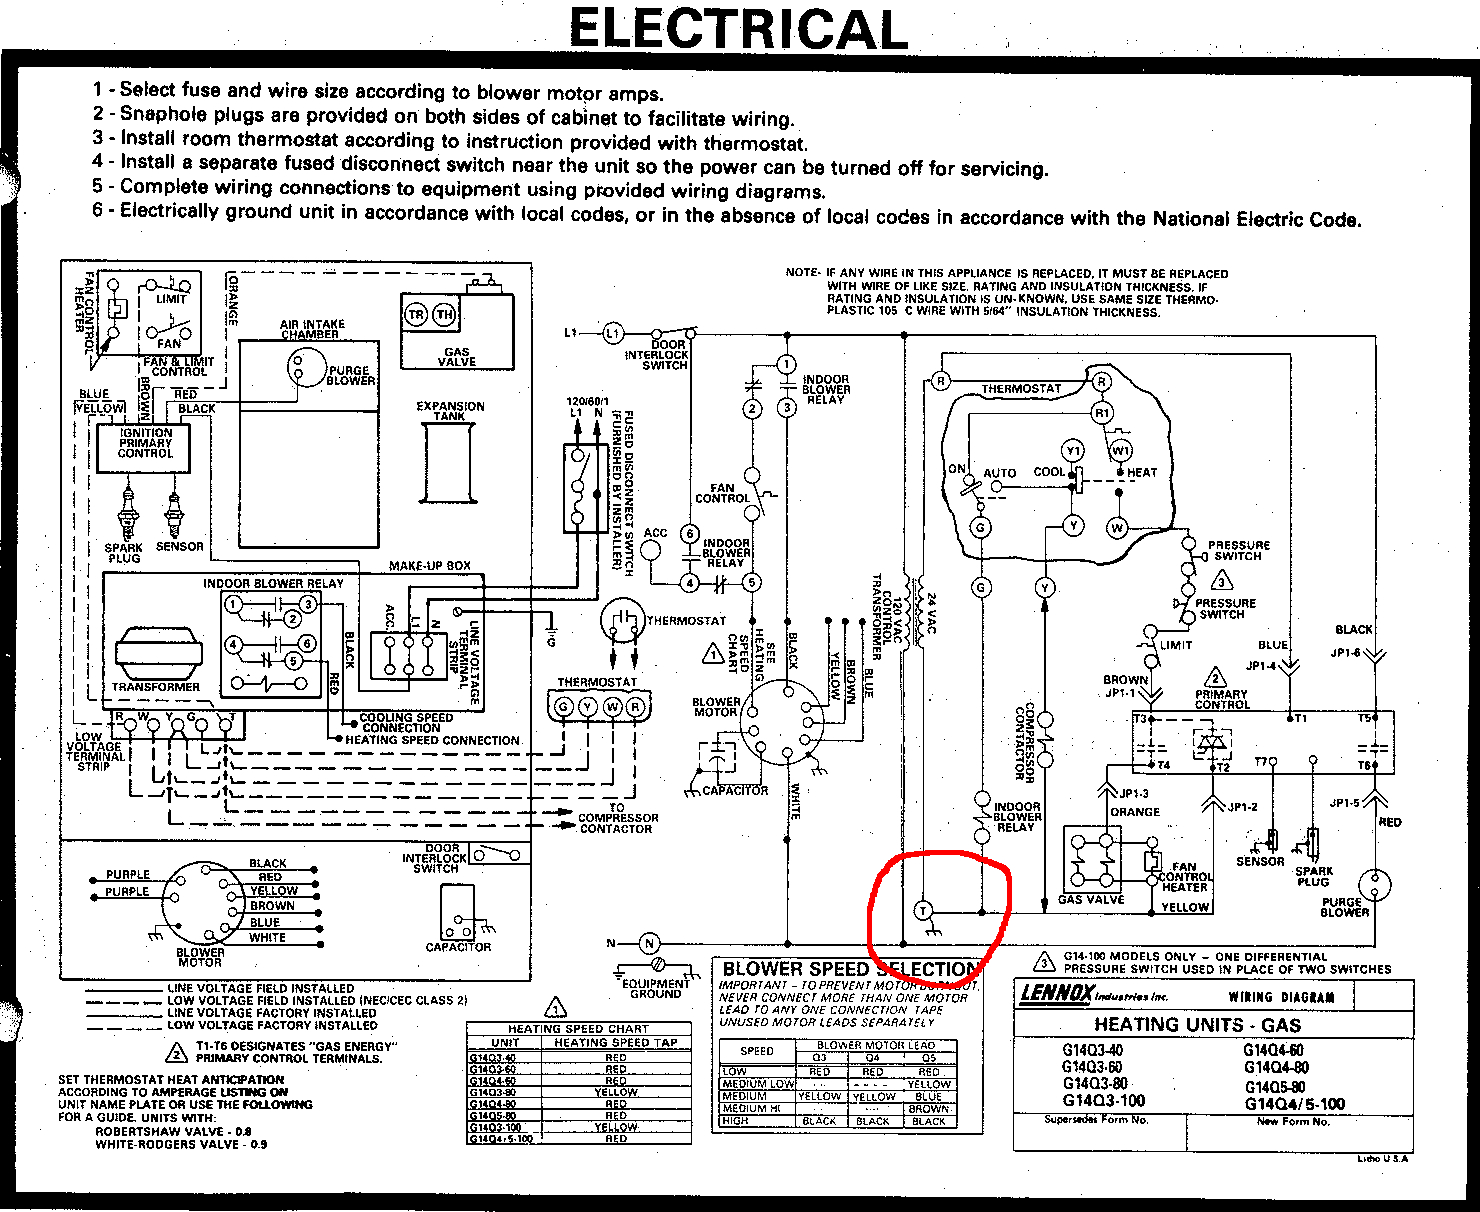 Furnace Wiring Diagram - Simple Wiring Diagram - Nest Wiring Diagram Amanda